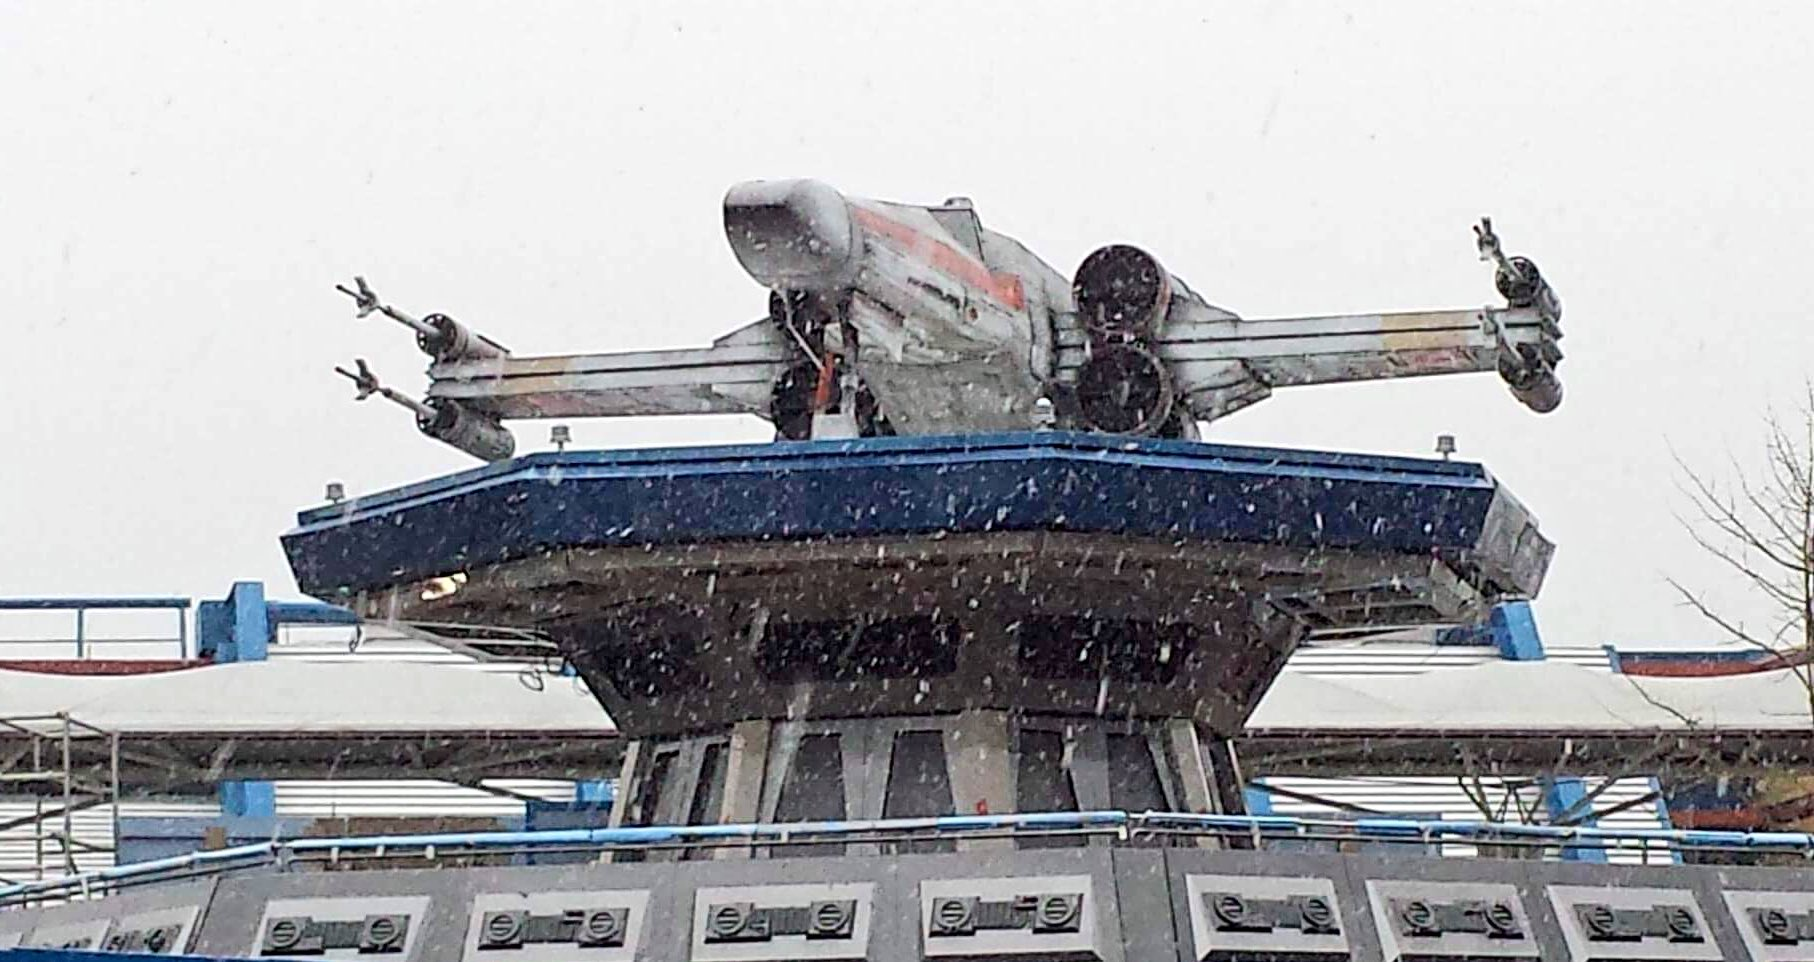 Looks like the X-Wing landed in Hoth today ❄️ https://t.co/Gycf2pYSIx